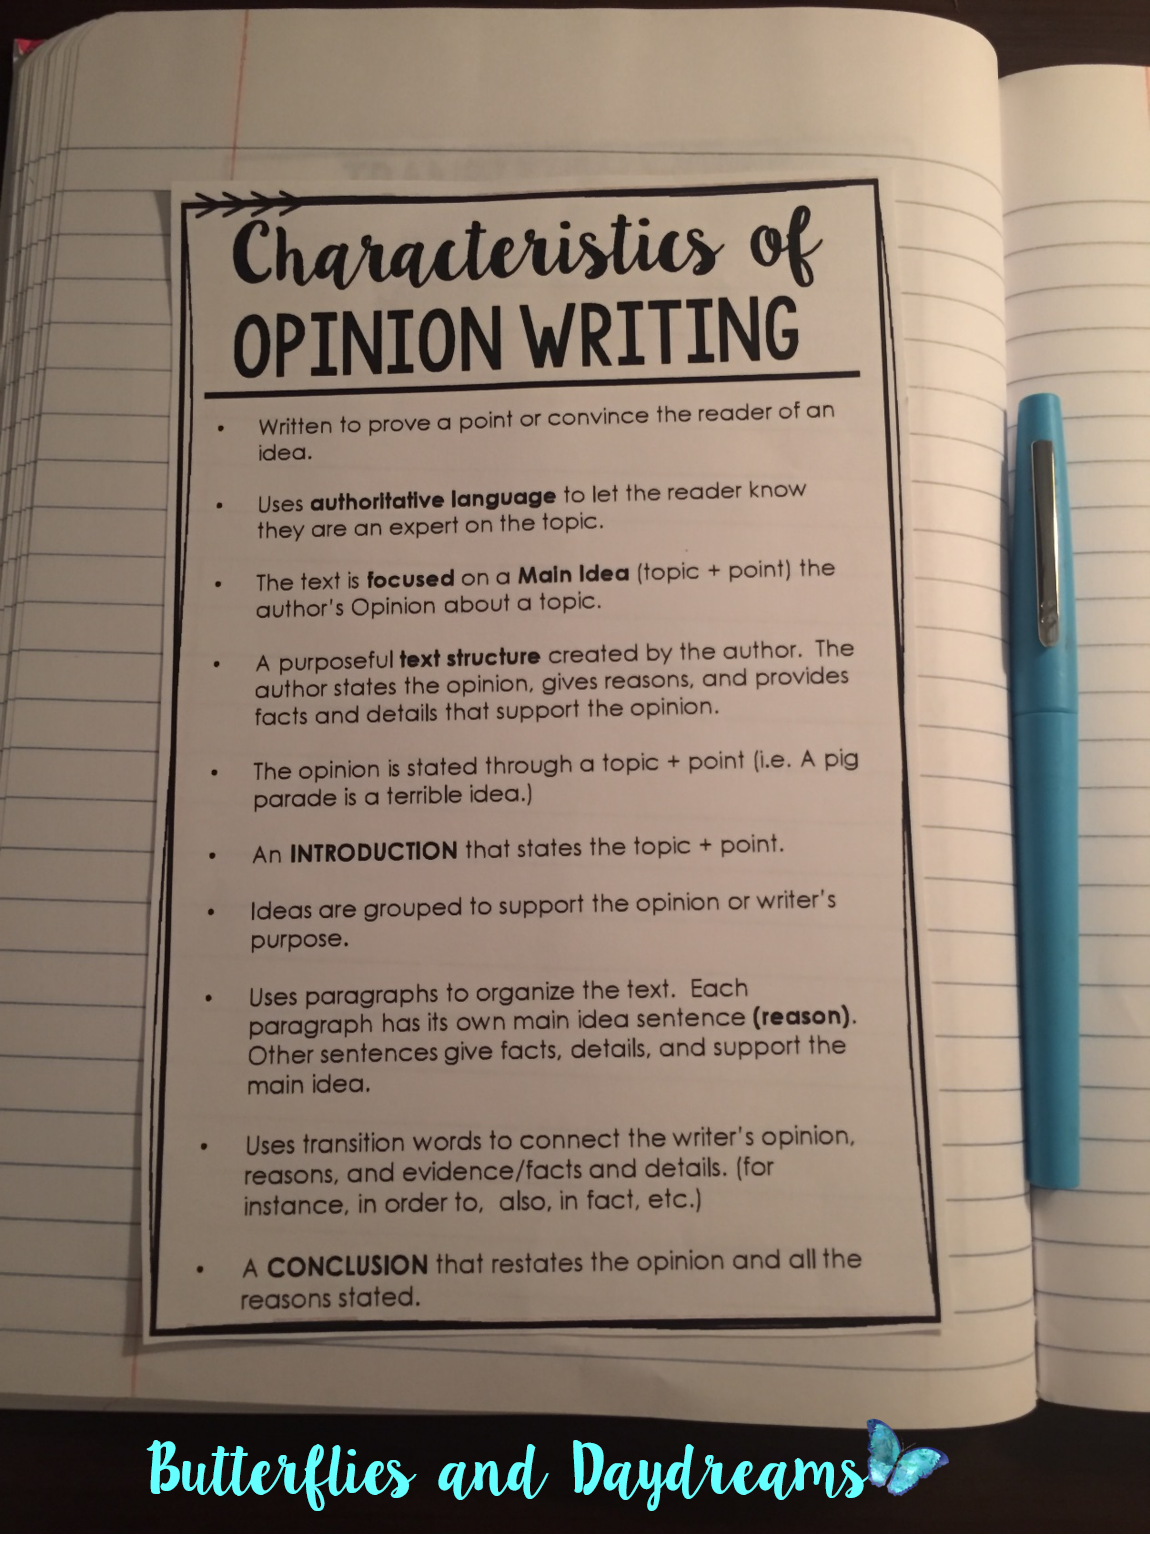 teaching opinion writing Know how to write an editorial your students have opinions about everything, so why not teach your class to put their views persuasively on paper let's write an editorial using three easy lessons.